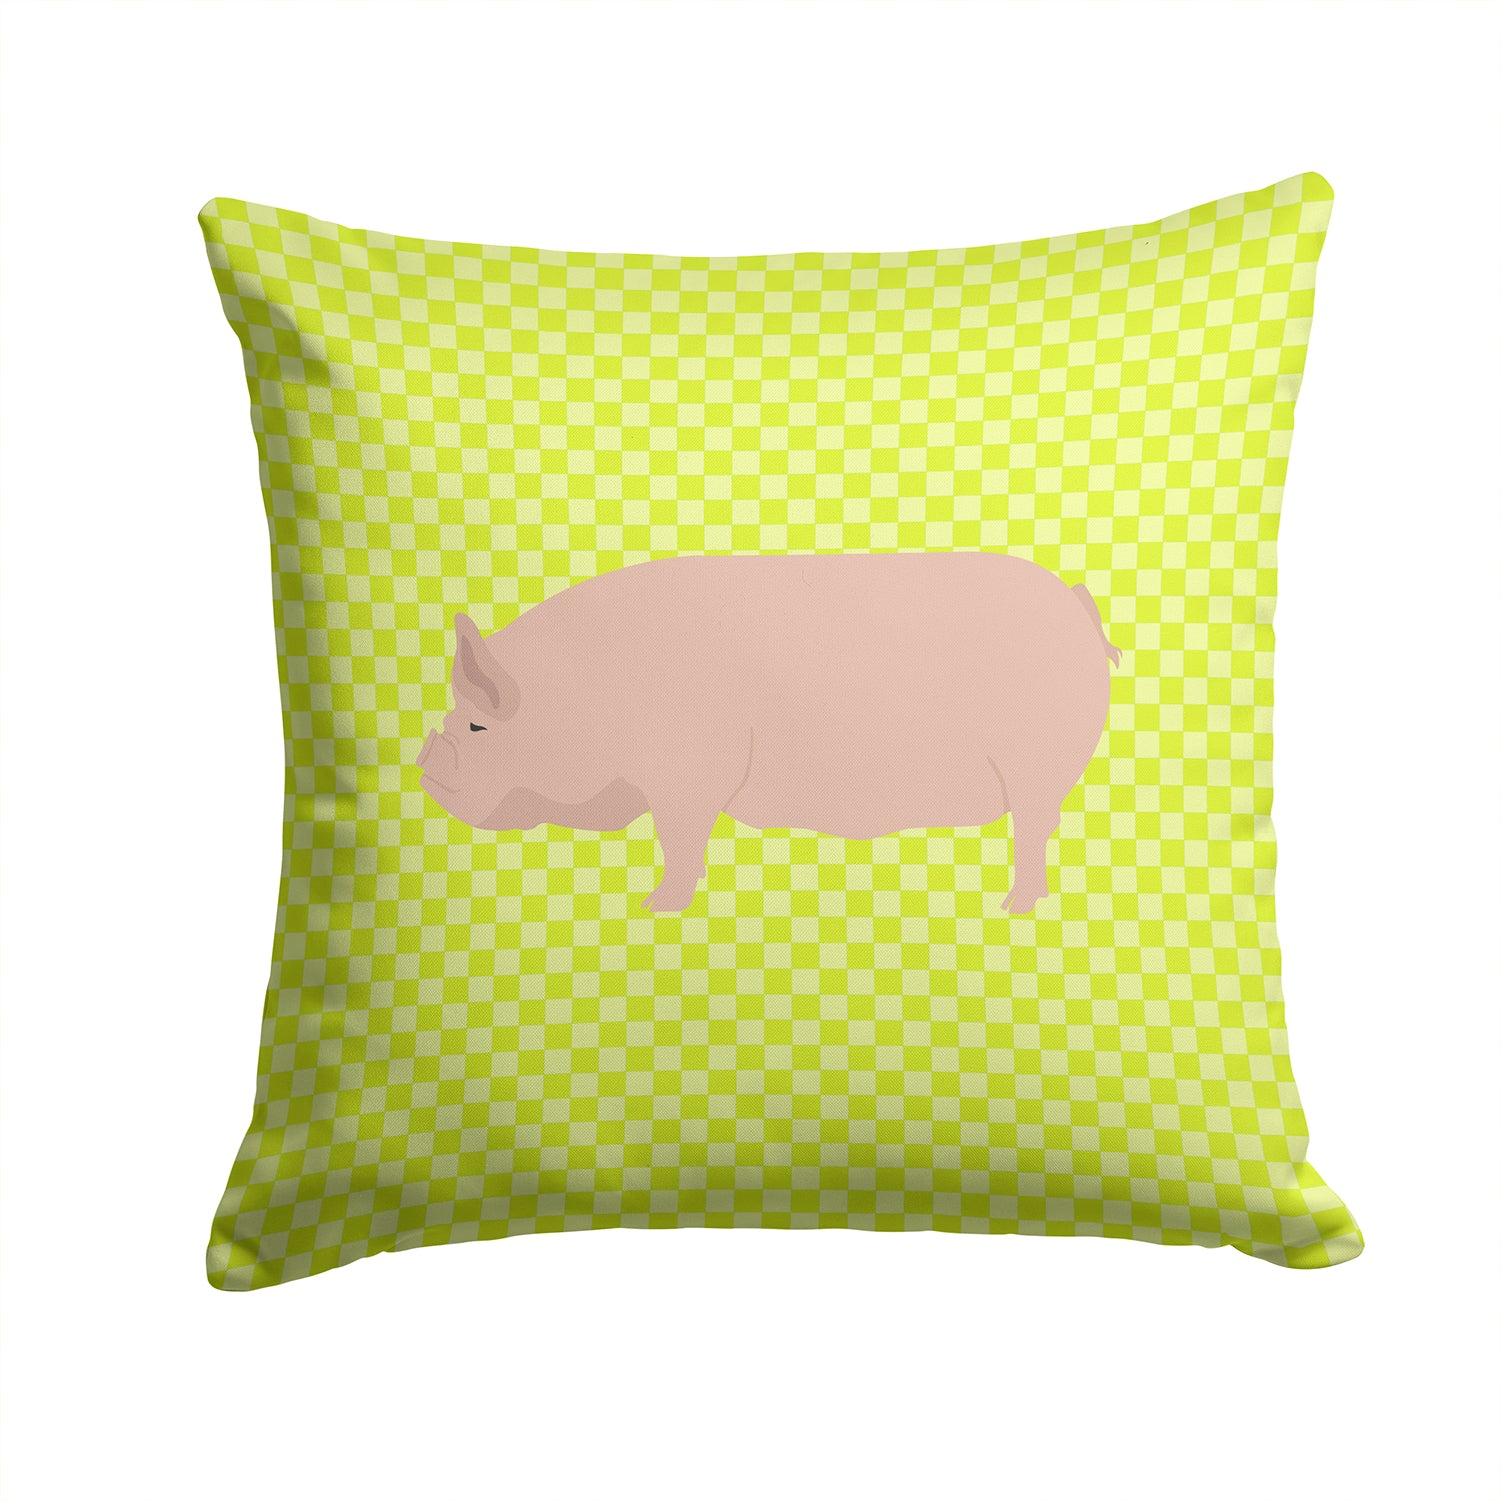 Welsh Pig Green Fabric Decorative Pillow BB7763PW1414 by Caroline's Treasures